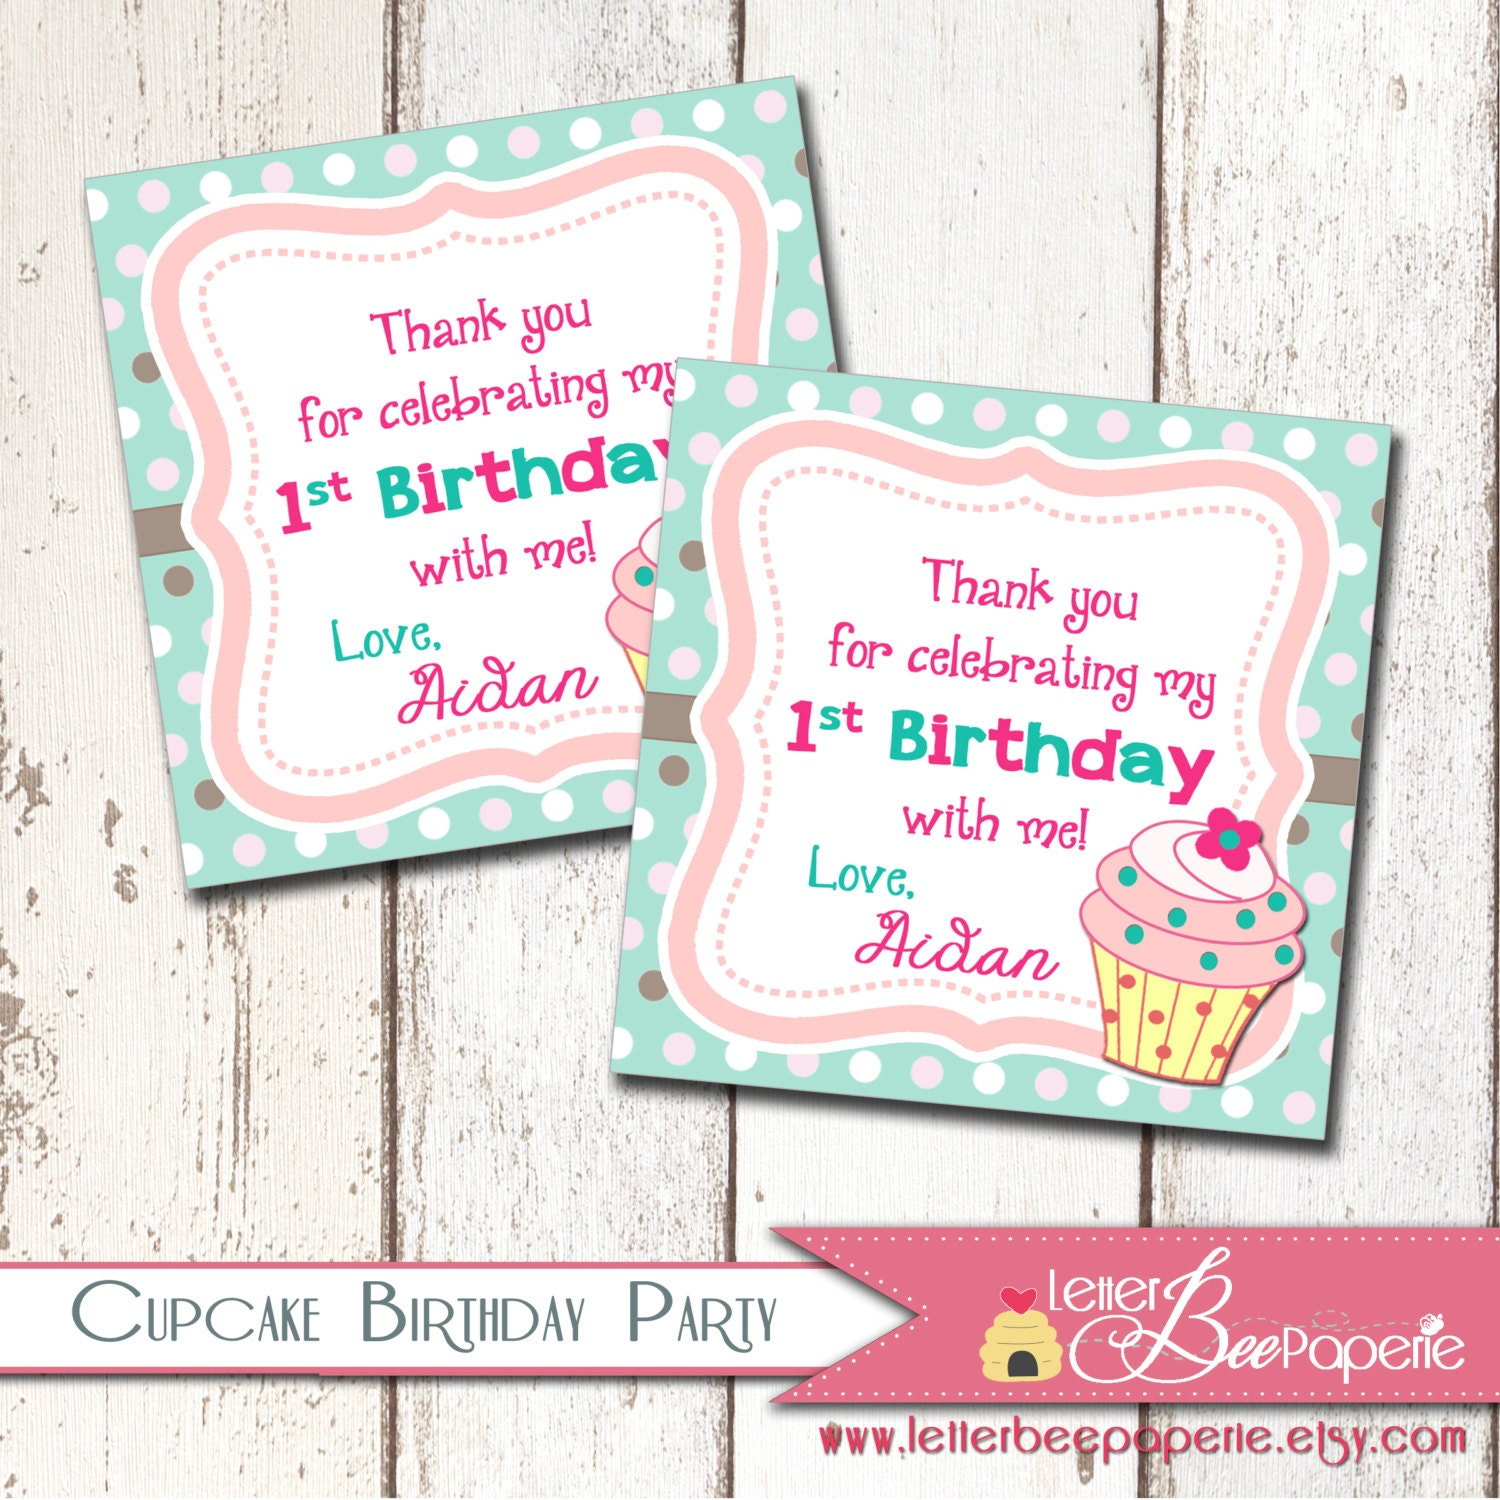 Our Little Cupcake Favor Tags - 1st, 2nd 3rd Birthday - DIY Printable ...: https://catchmyparty.com/vendors/product/cupcake-favor-tags-1st-2nd...